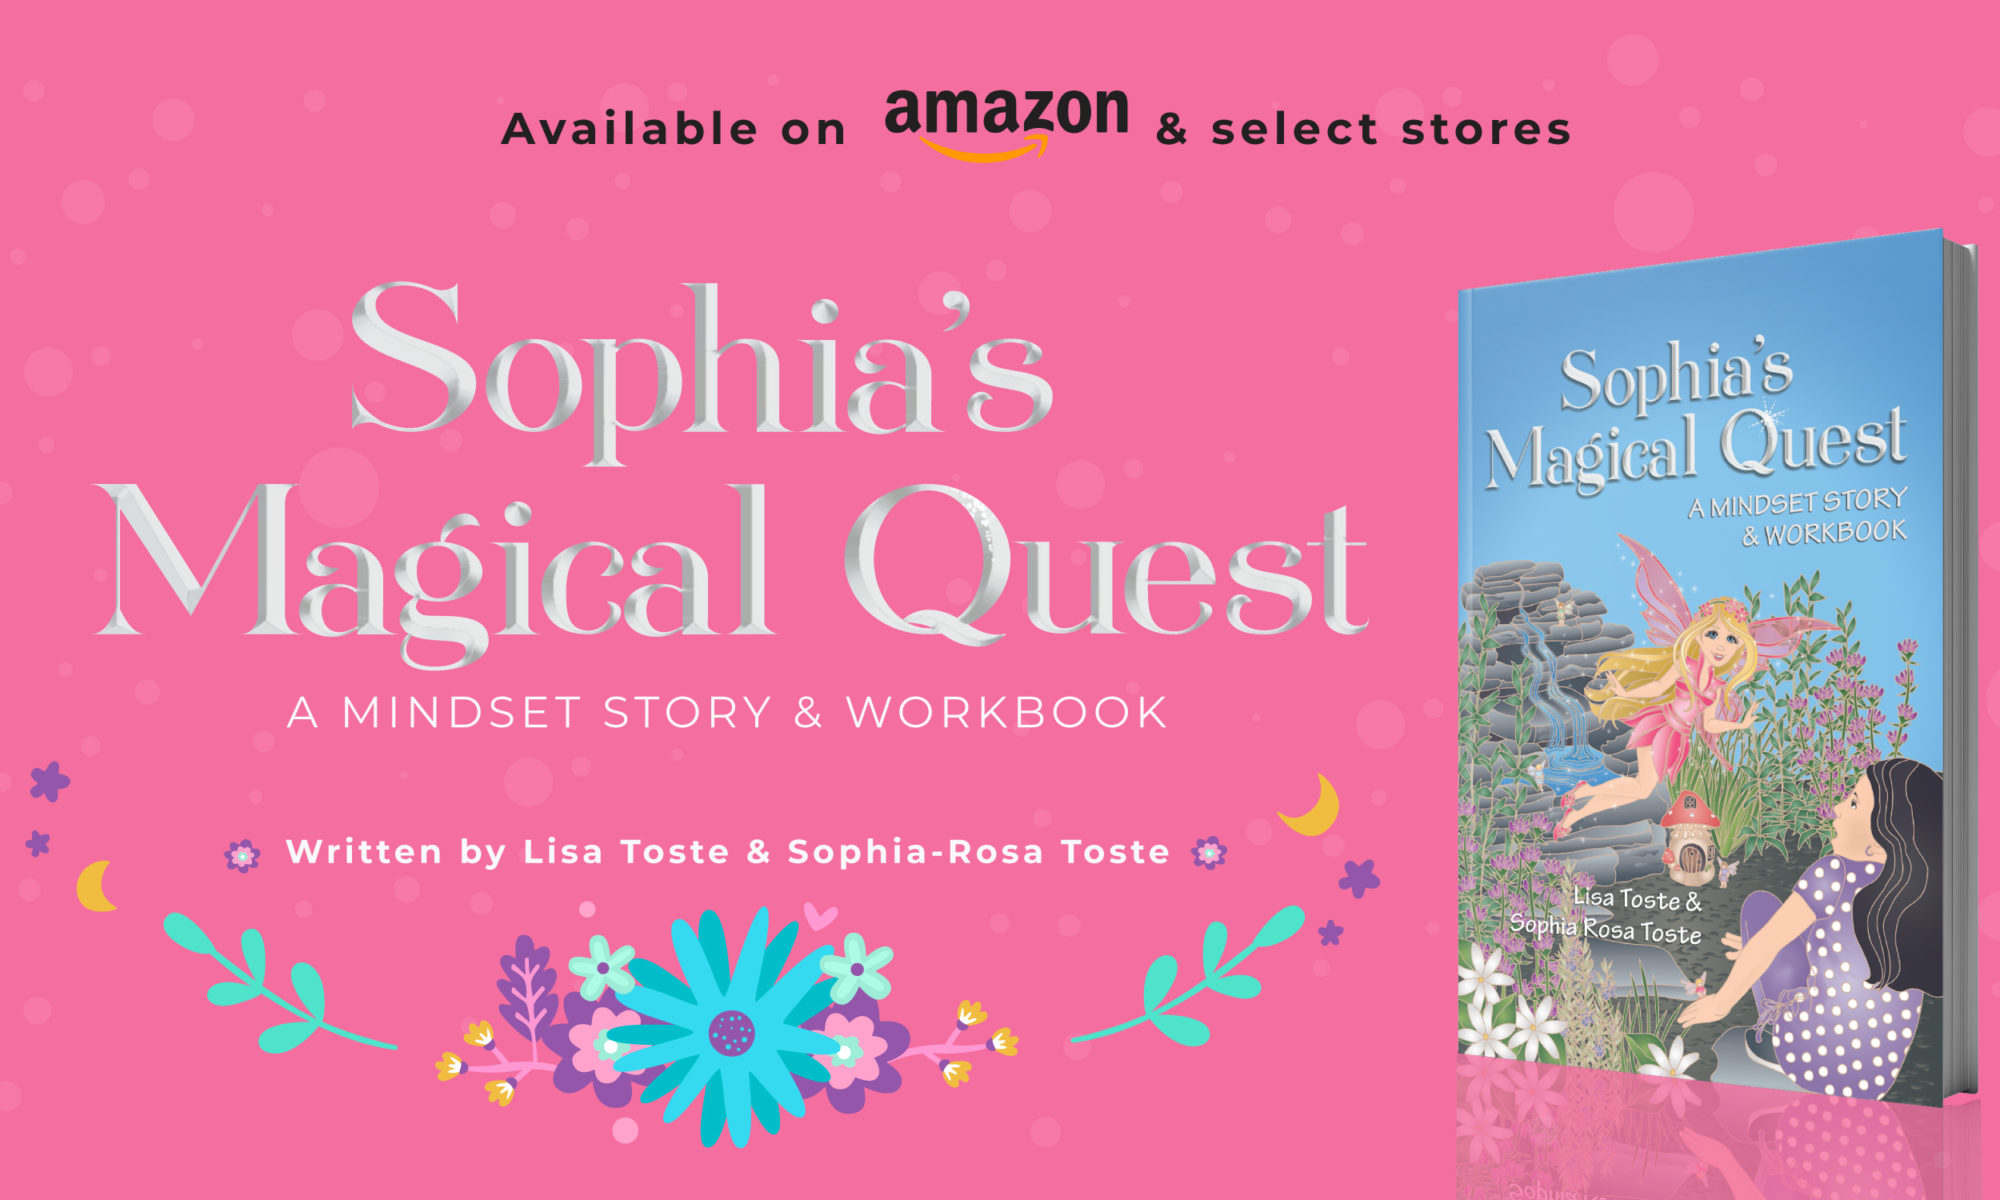 Sophia's Magical Quest